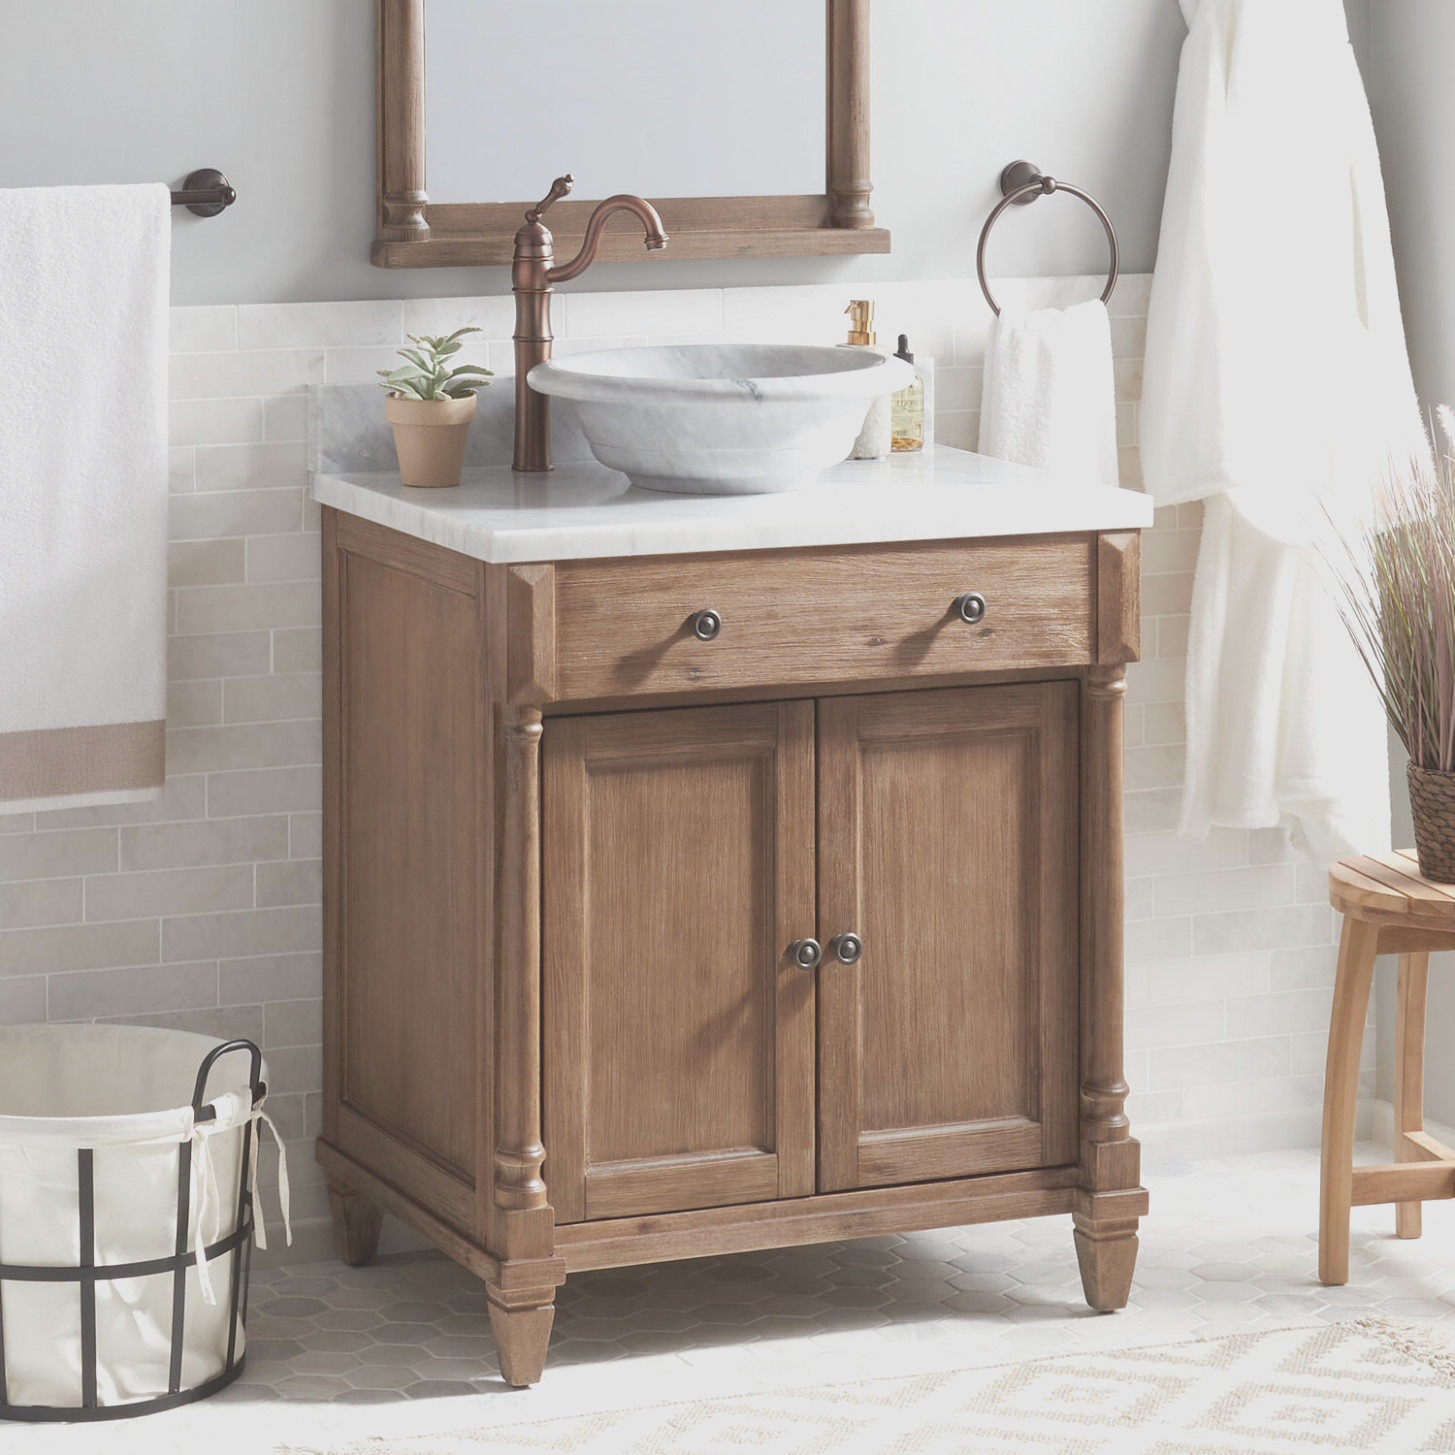 Bathroom Vanity Cabinet for Vessel Sink